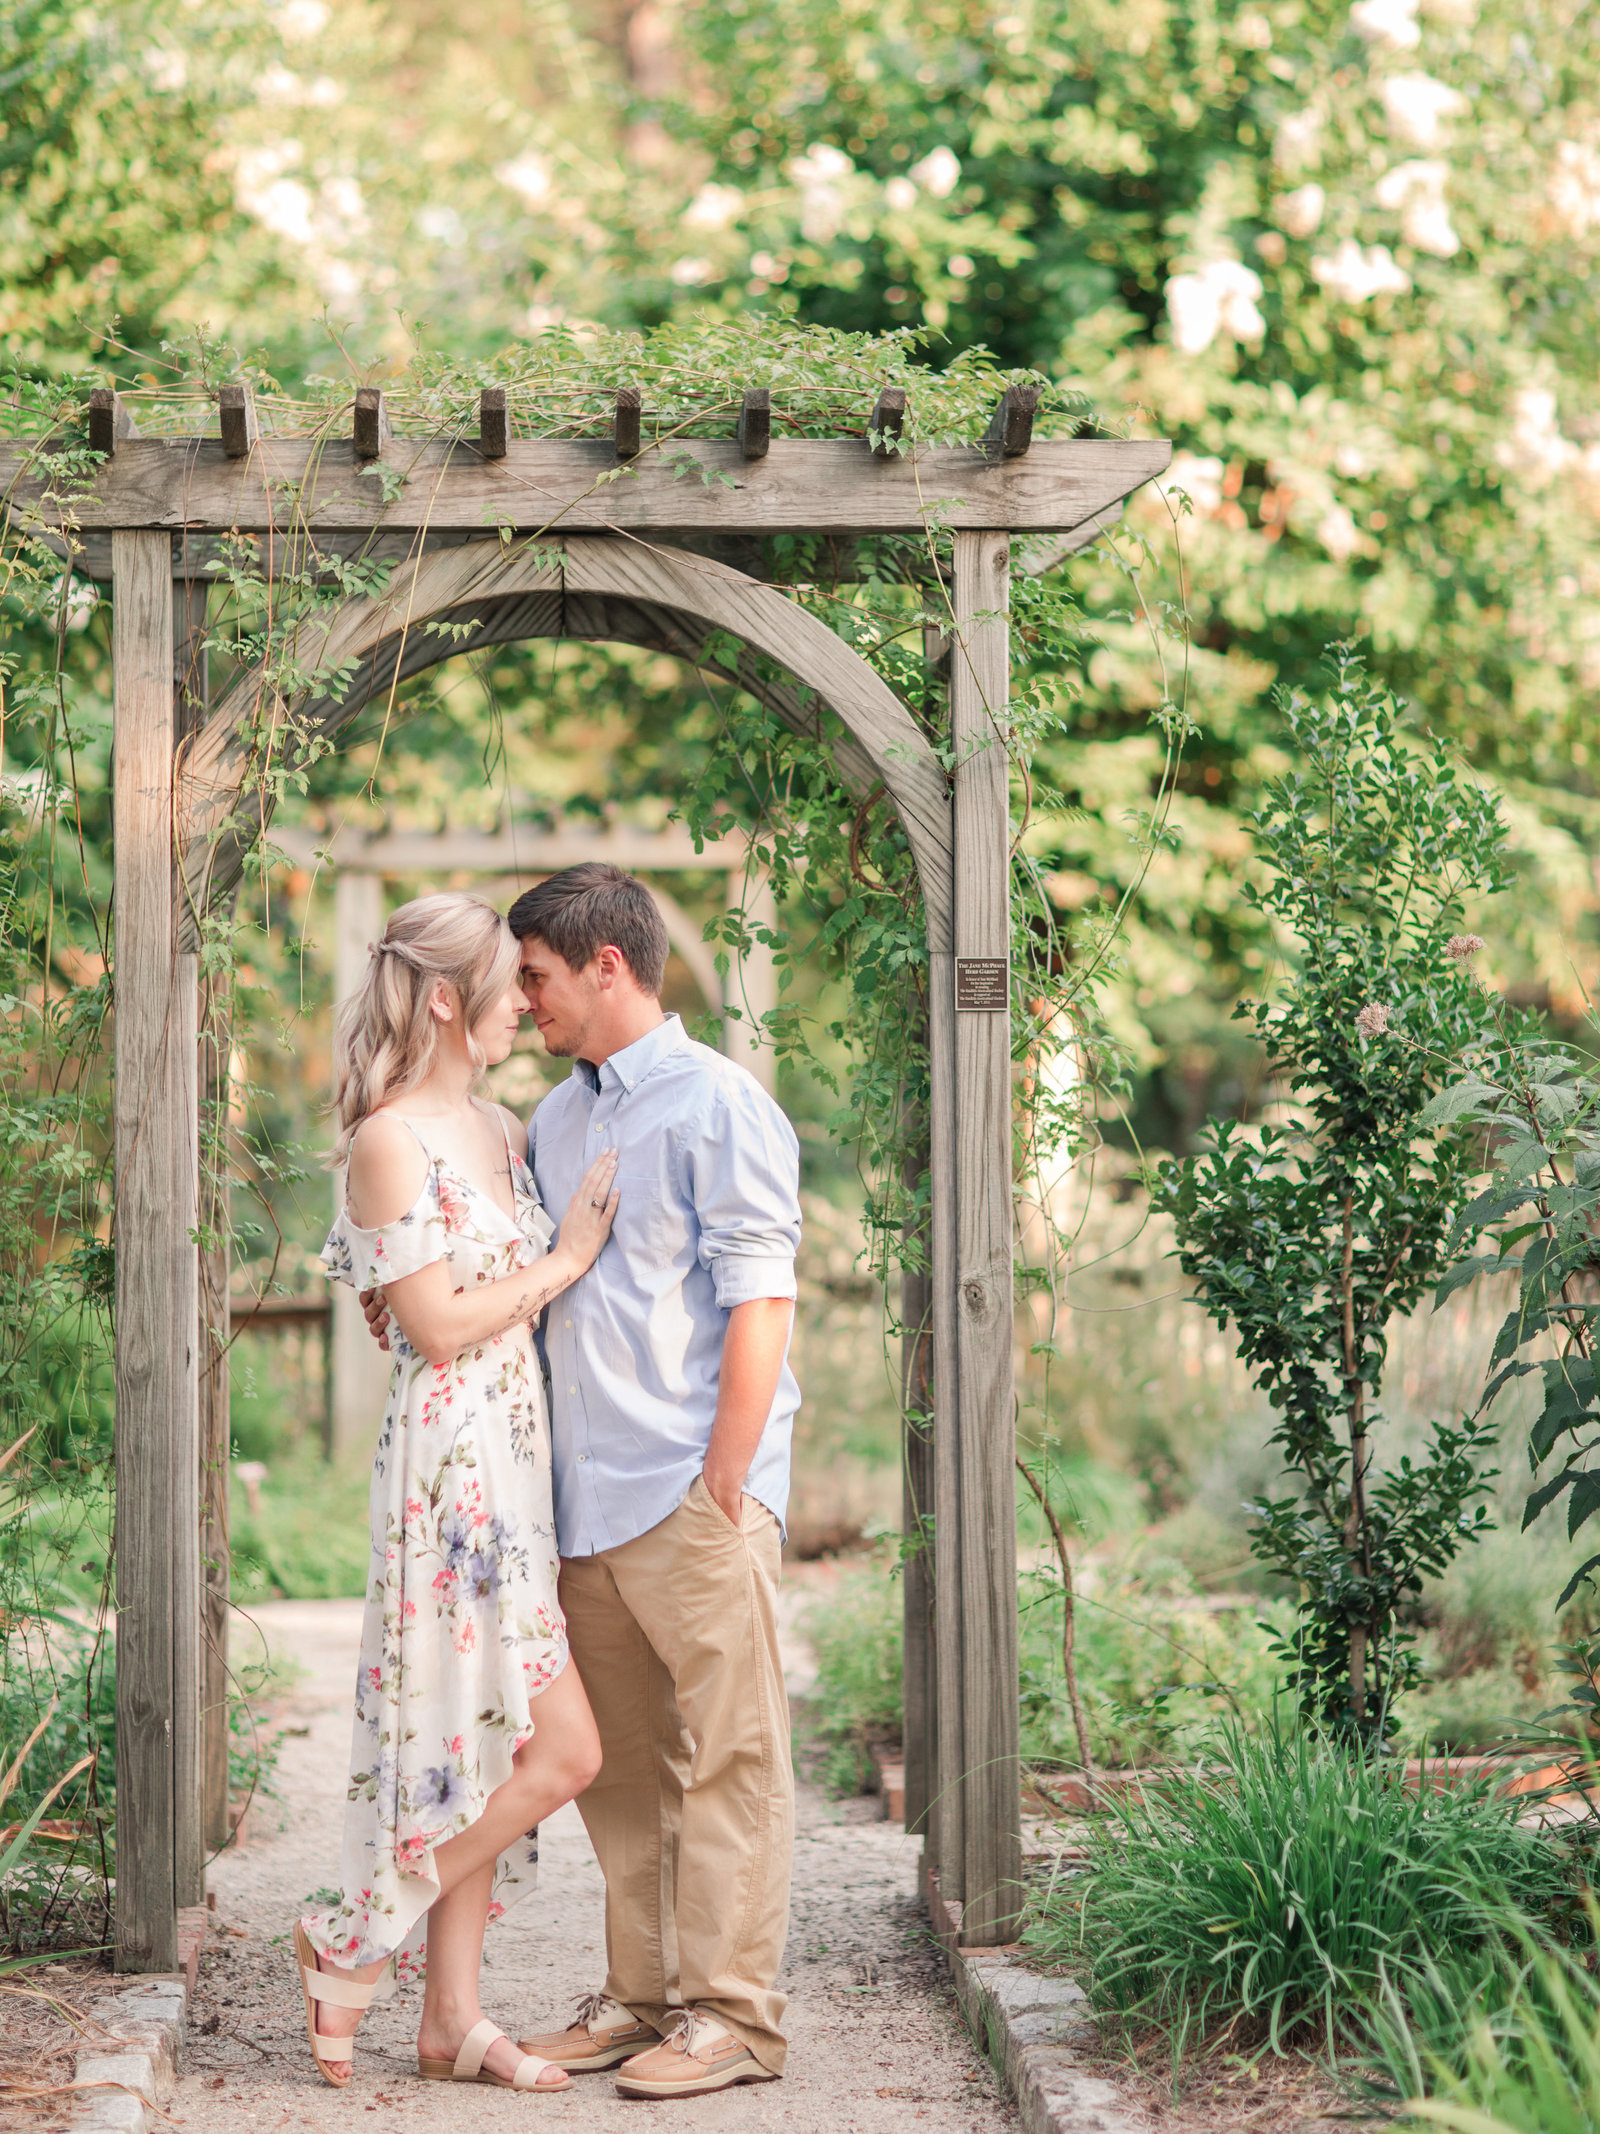 Jennifer B Photography-Sandhills Horticultural Gardens Engagement-Pinehurst NC-Cody and Kayla-2019-0064